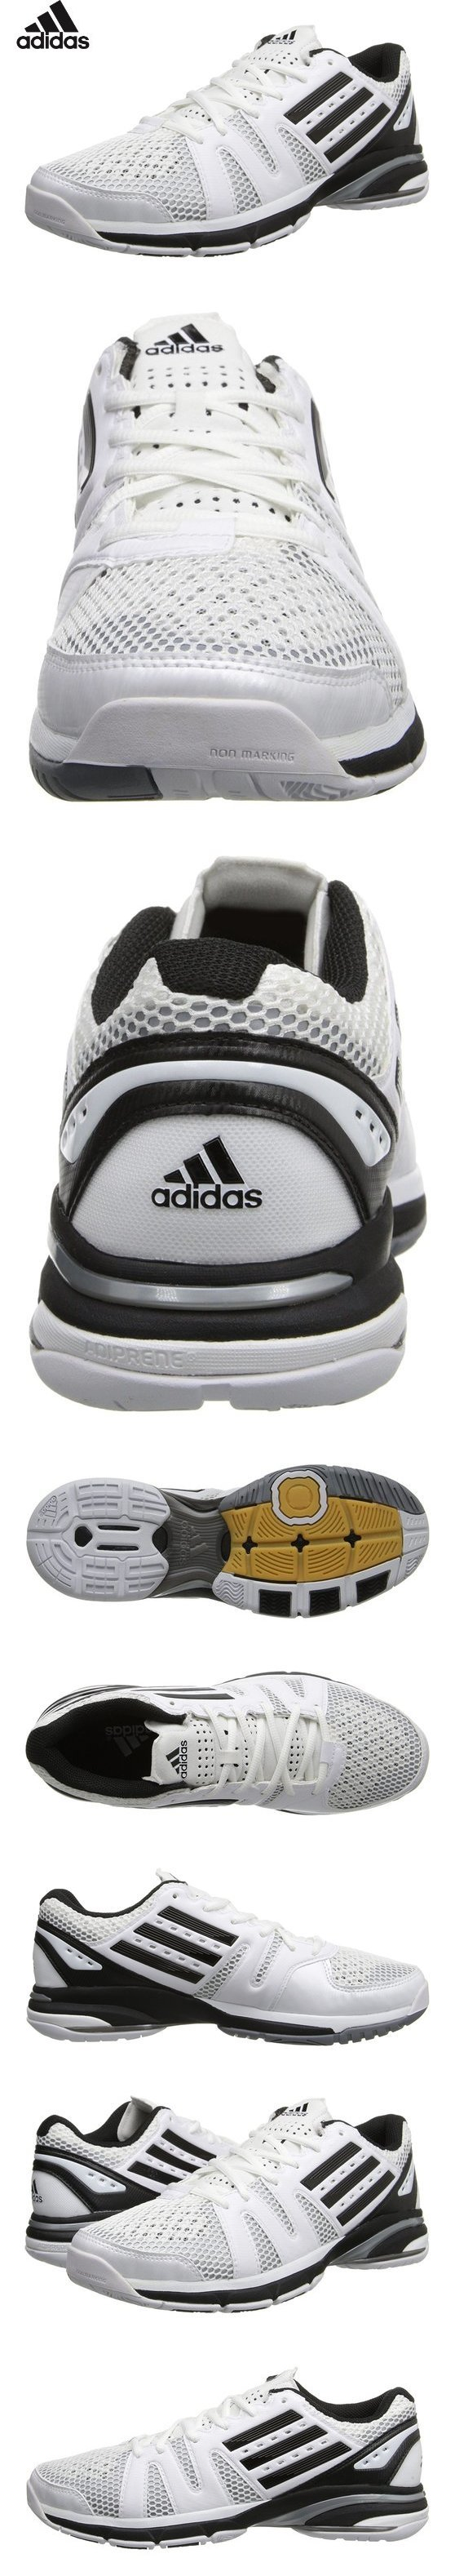 79 95 Adidas Volley Light Womens Volleyball Shoe 8 White Black Grey Volleyball Shoes Shoes Women Volleyball